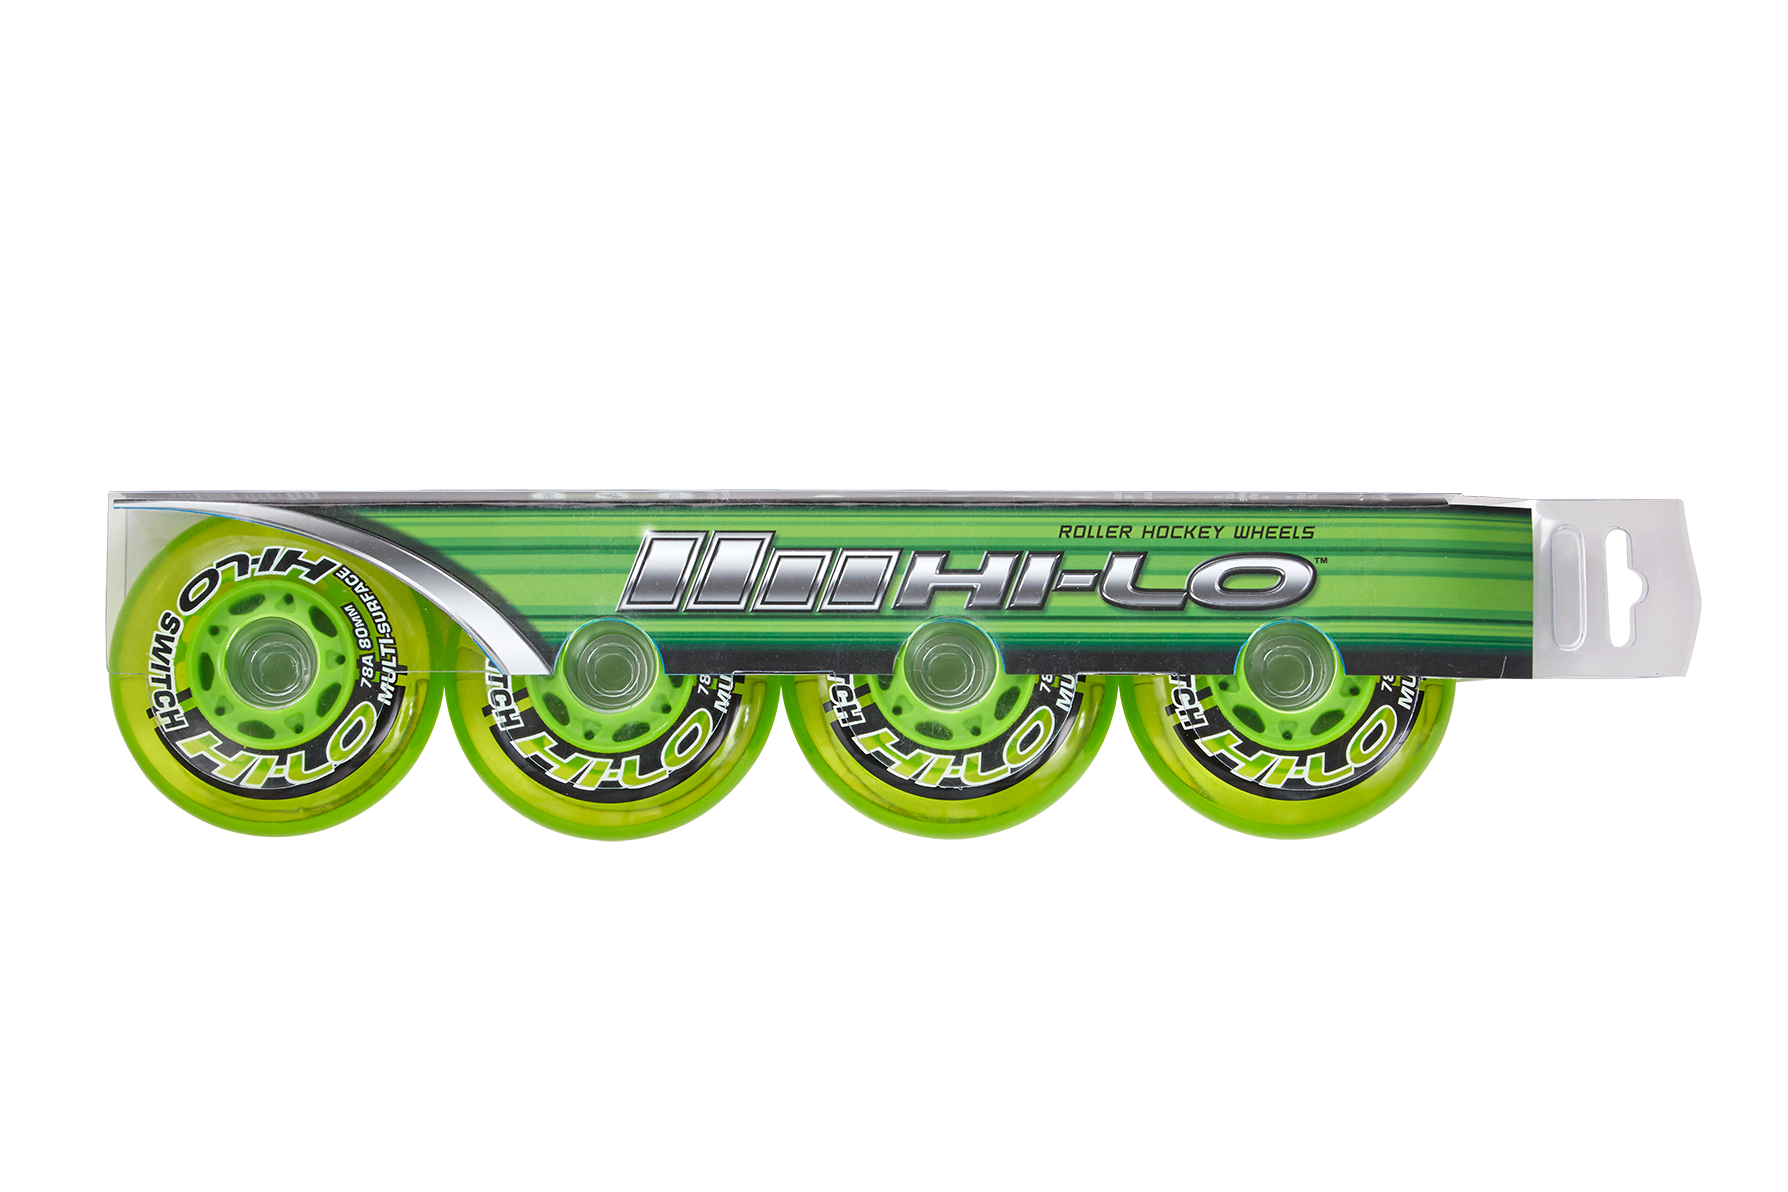 HI-LO SWITCH ROLLER HOCKEY WHEELS 4PK S19 (INDOOR / OUTDOOR),,Размер M